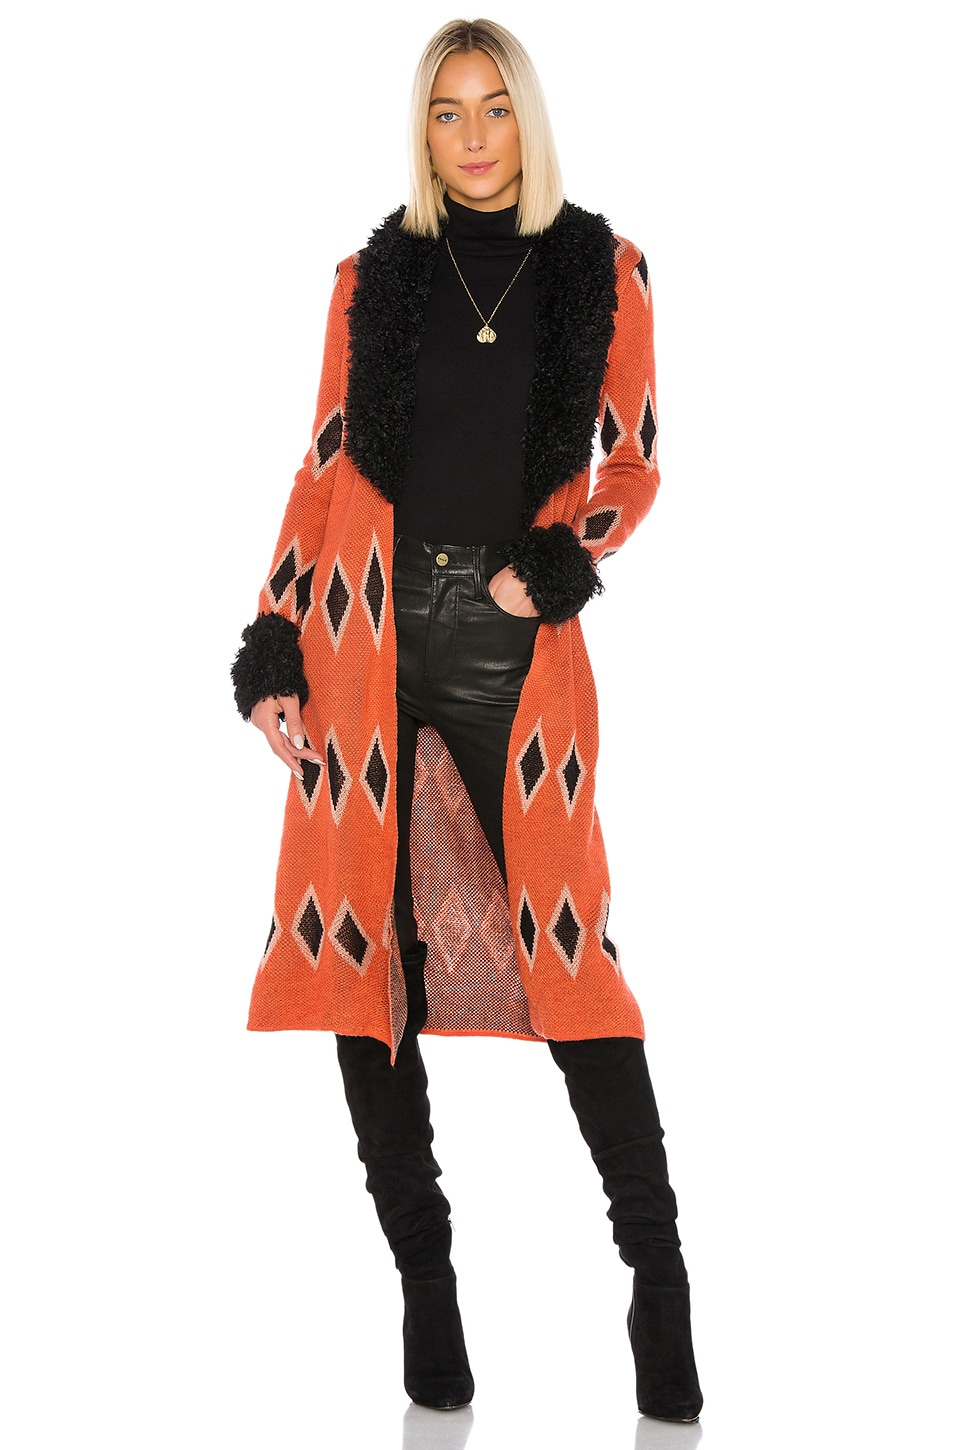 House of Harlow 1960 x REVOLVE Cullen Coat in Autumn